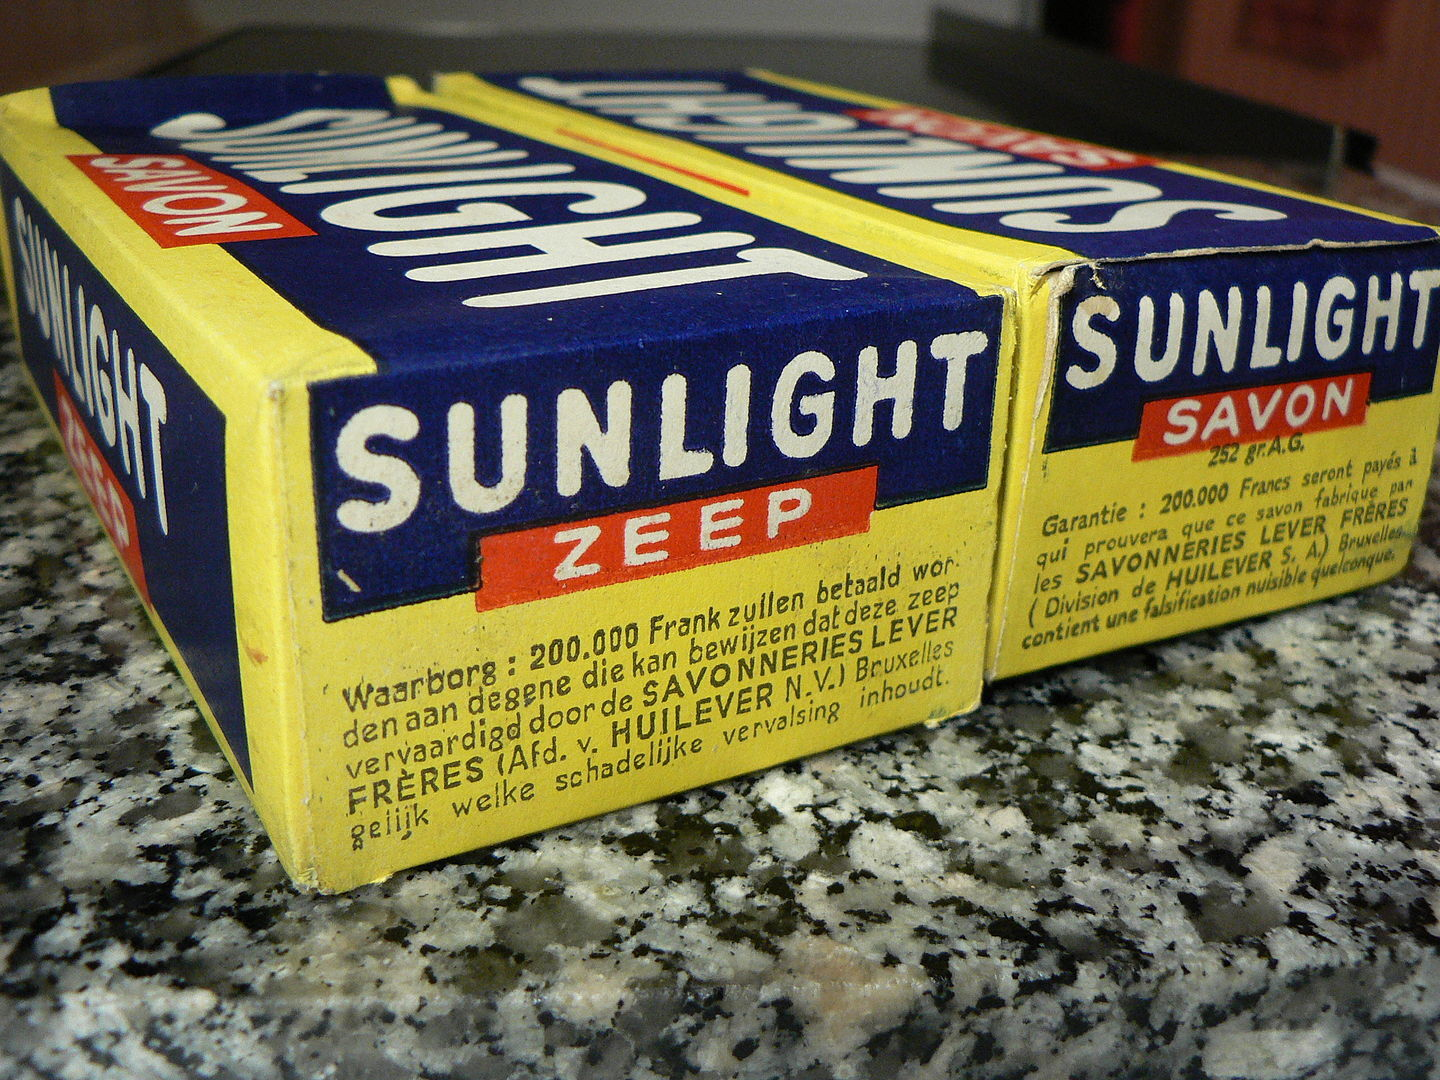 Palm Oil Facts, Sunlight Soap